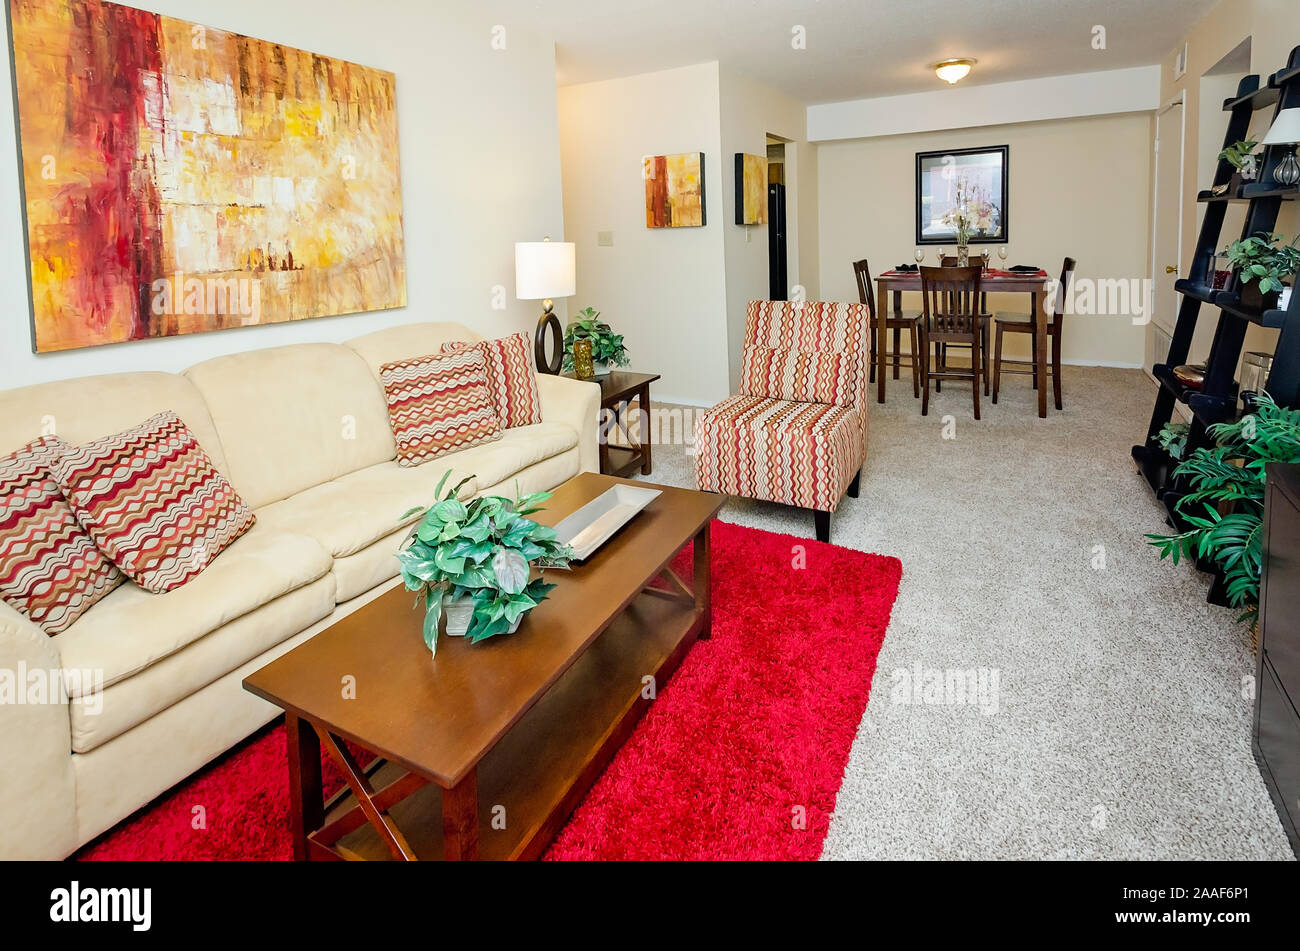 Open Plan Living Room Dining High Resolution Stock Photography And Images Alamy